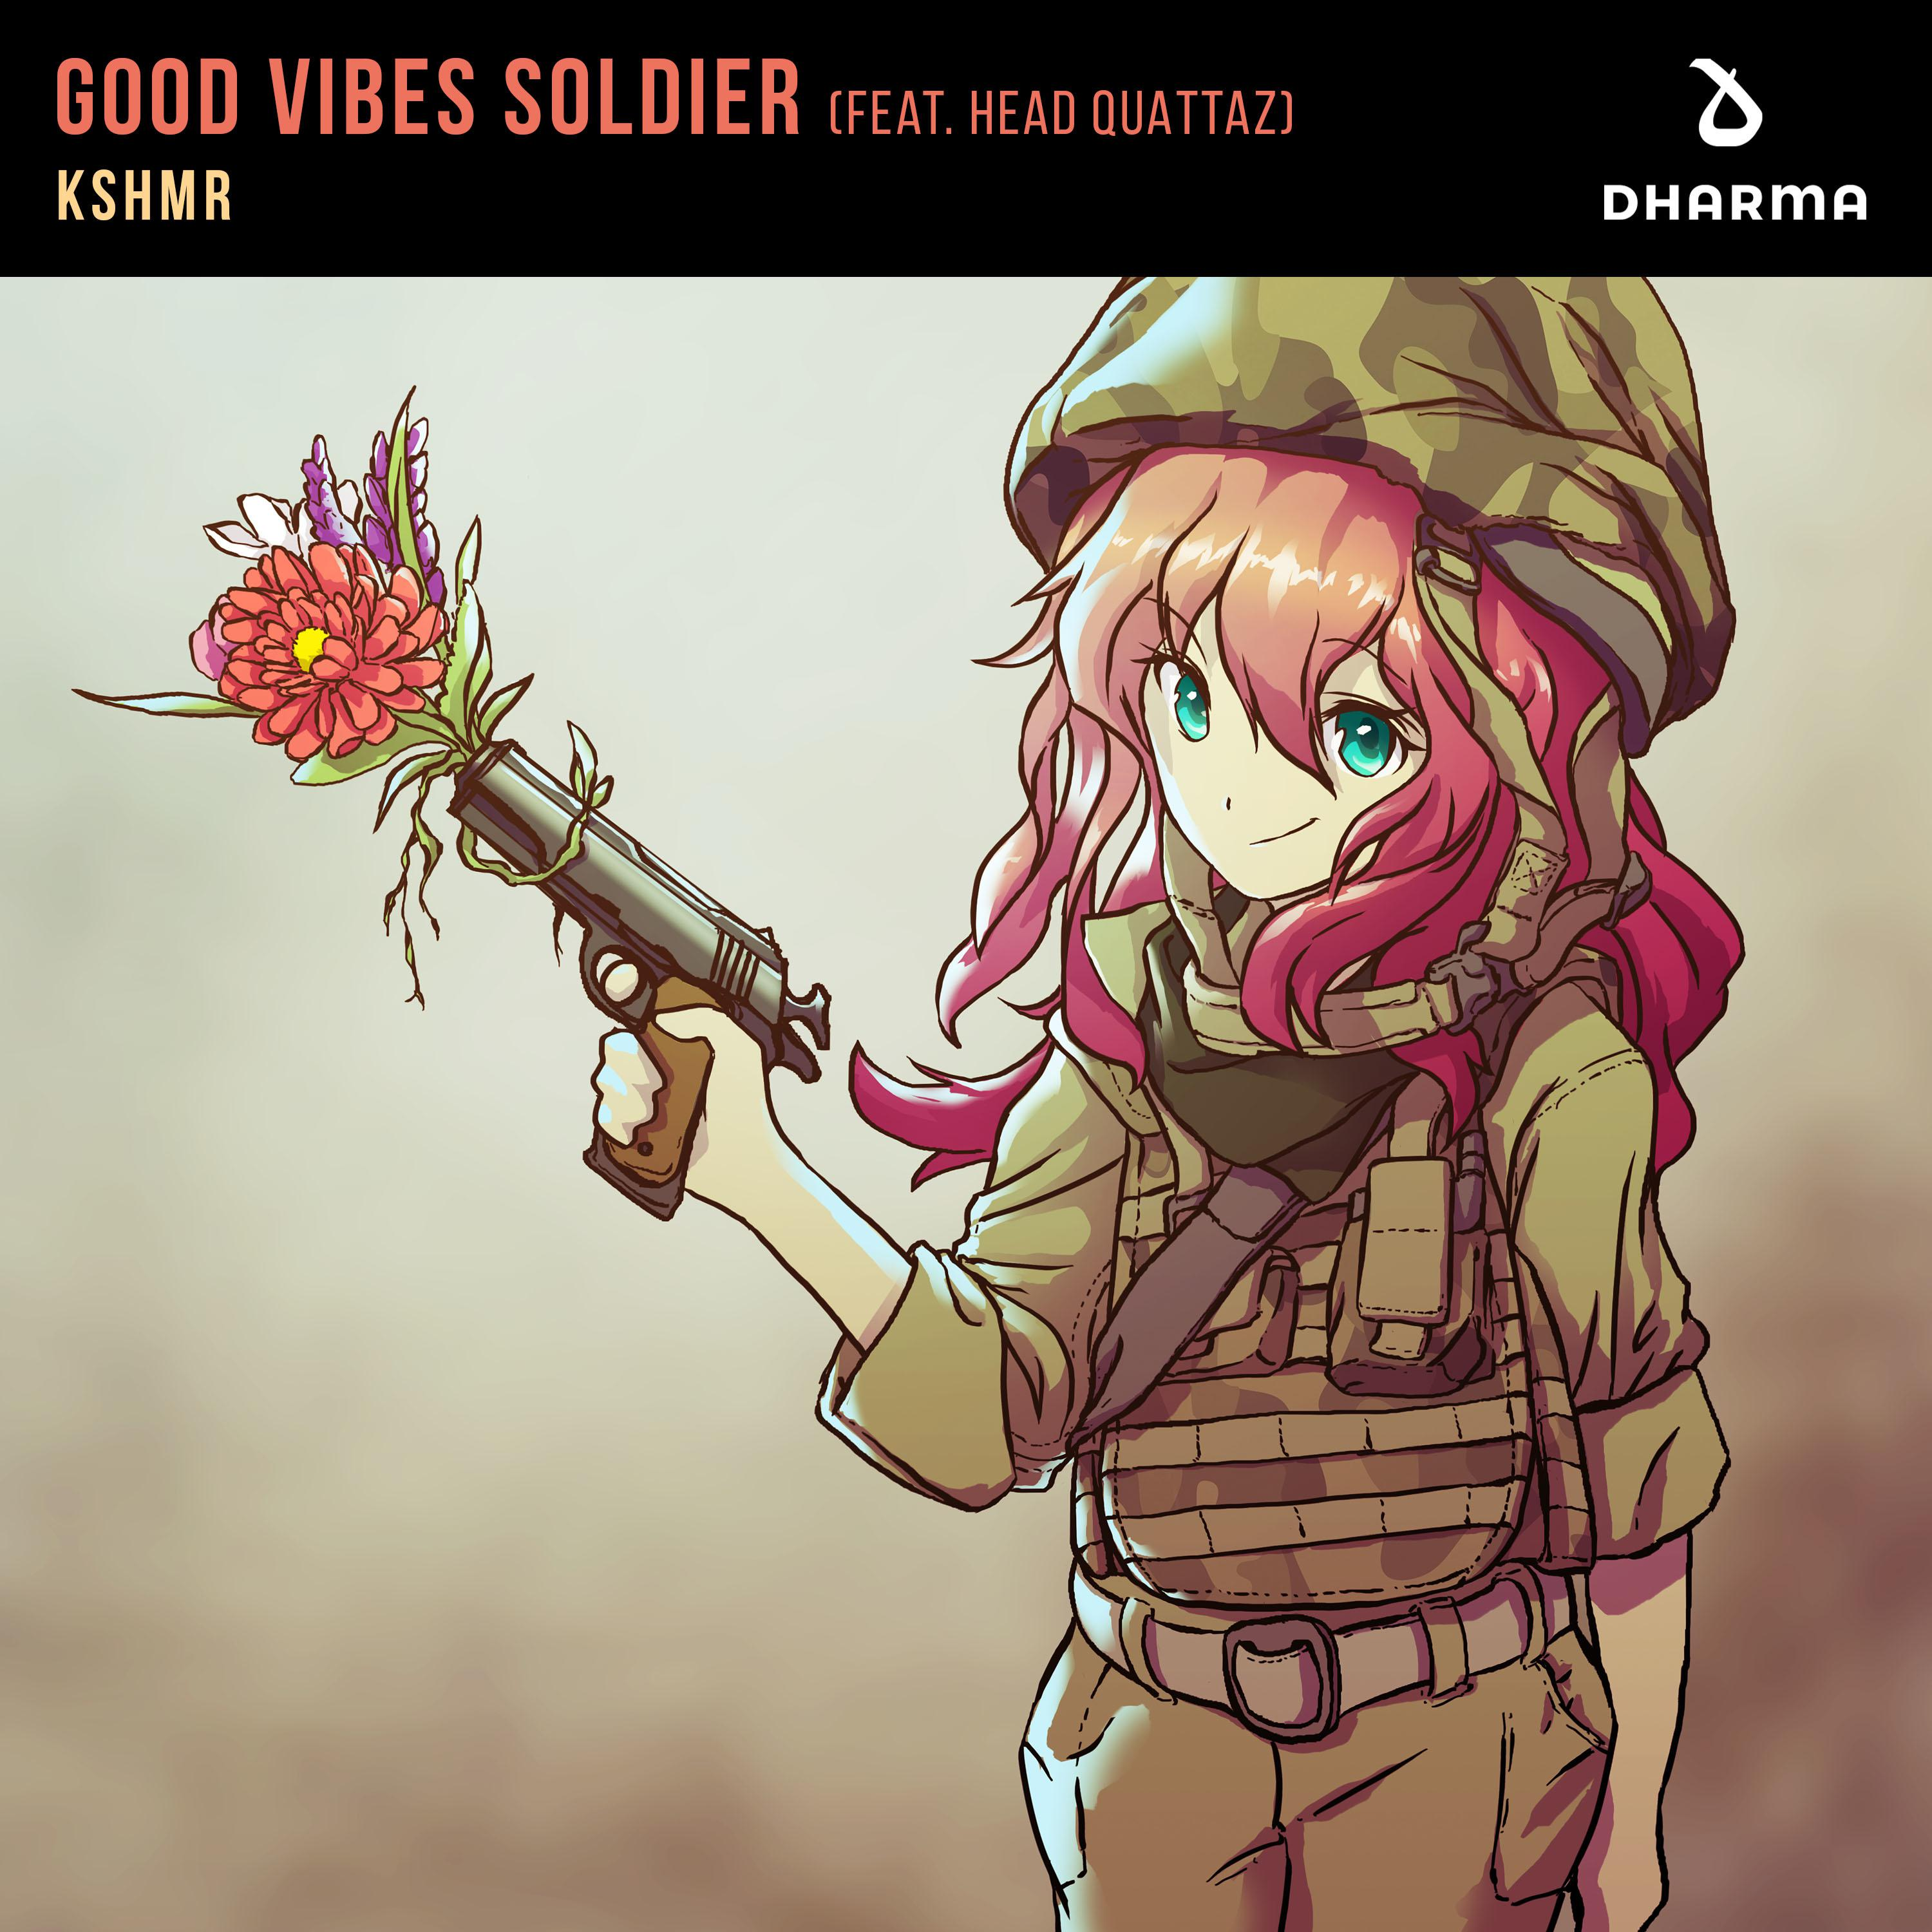 Good Vibes Soldier